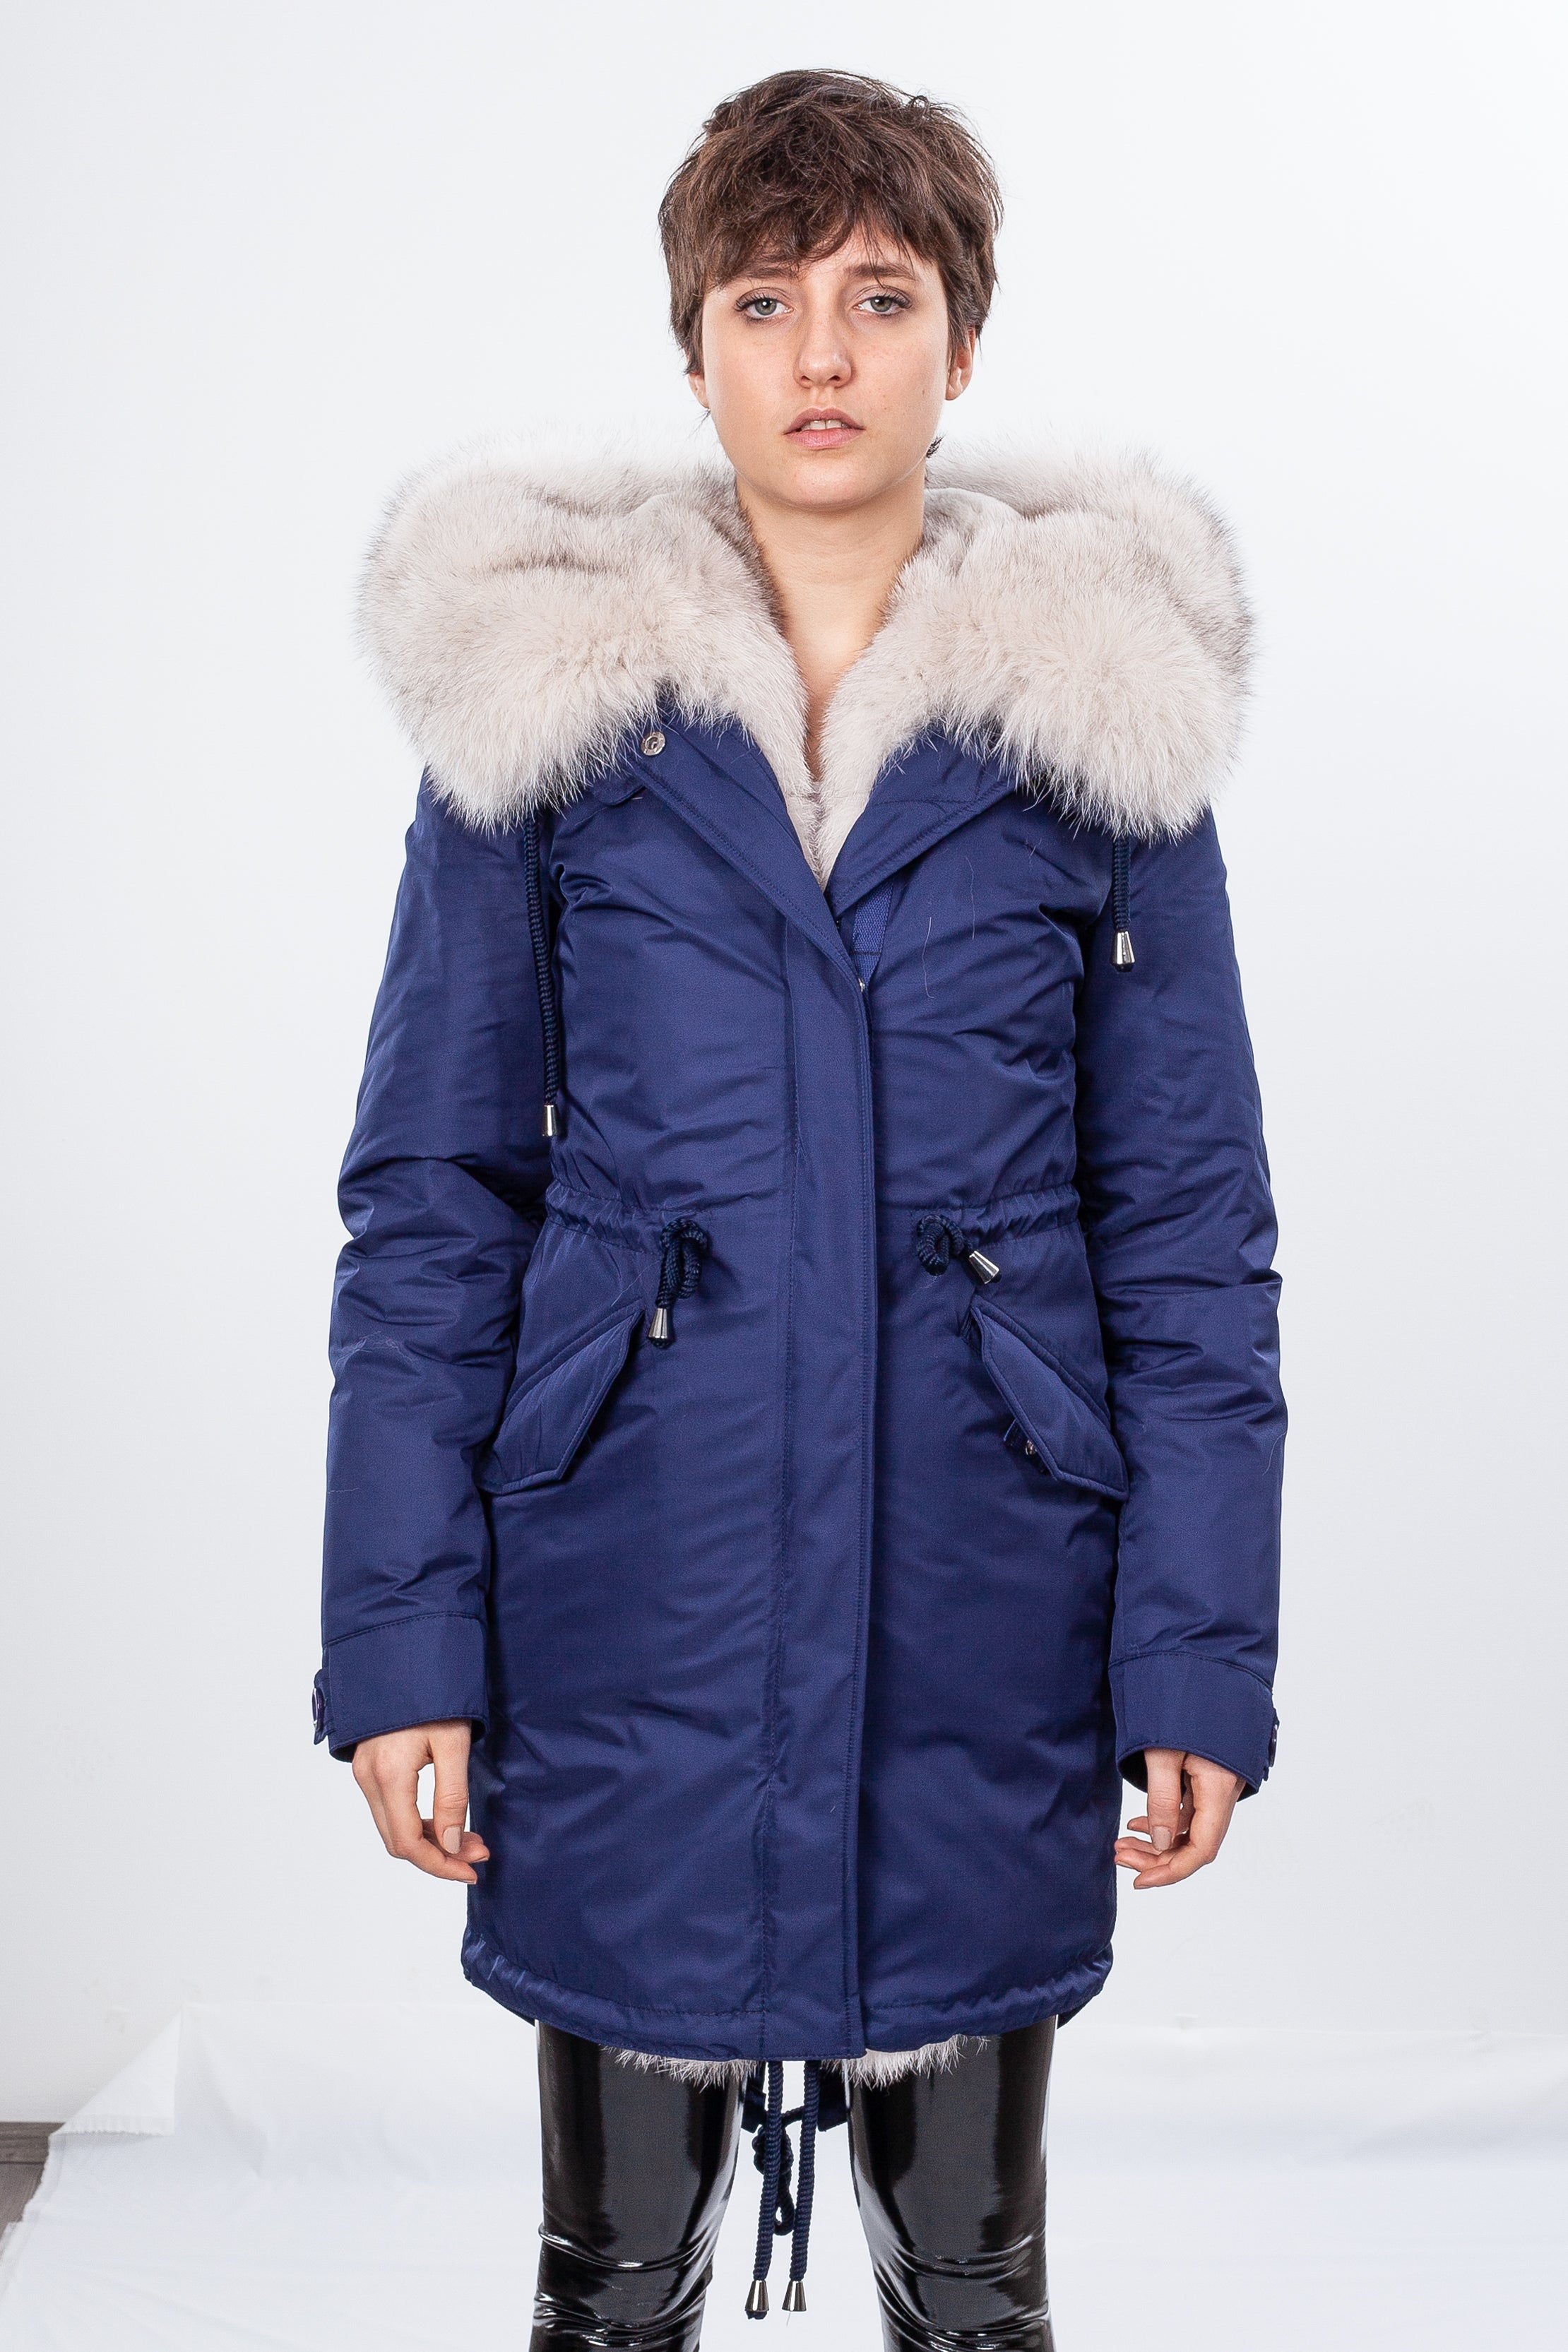 Navy Midi Parka Main Fabric is Waterproof / Raincoat Fabric With Beige Blue Fox